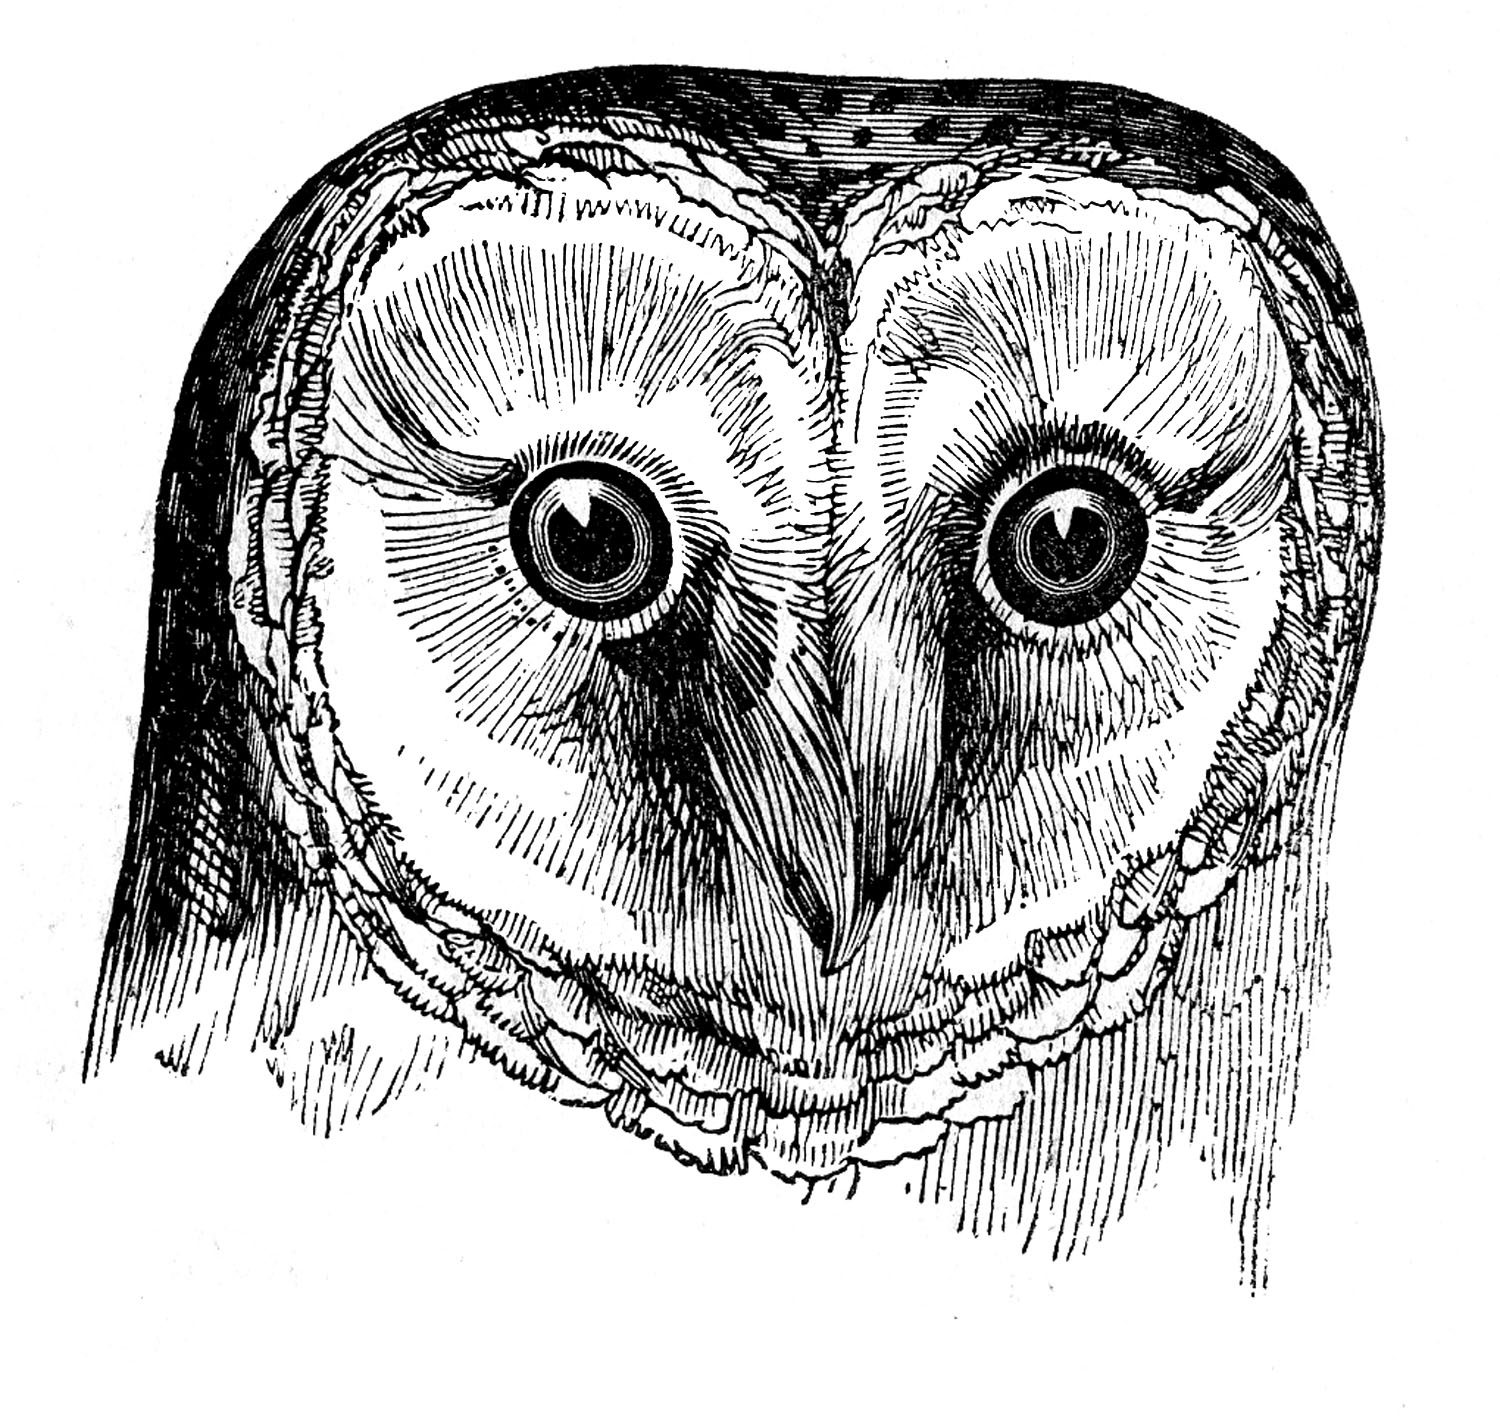 Vintage Images - Owl Head Engravings - The Graphics Fairy